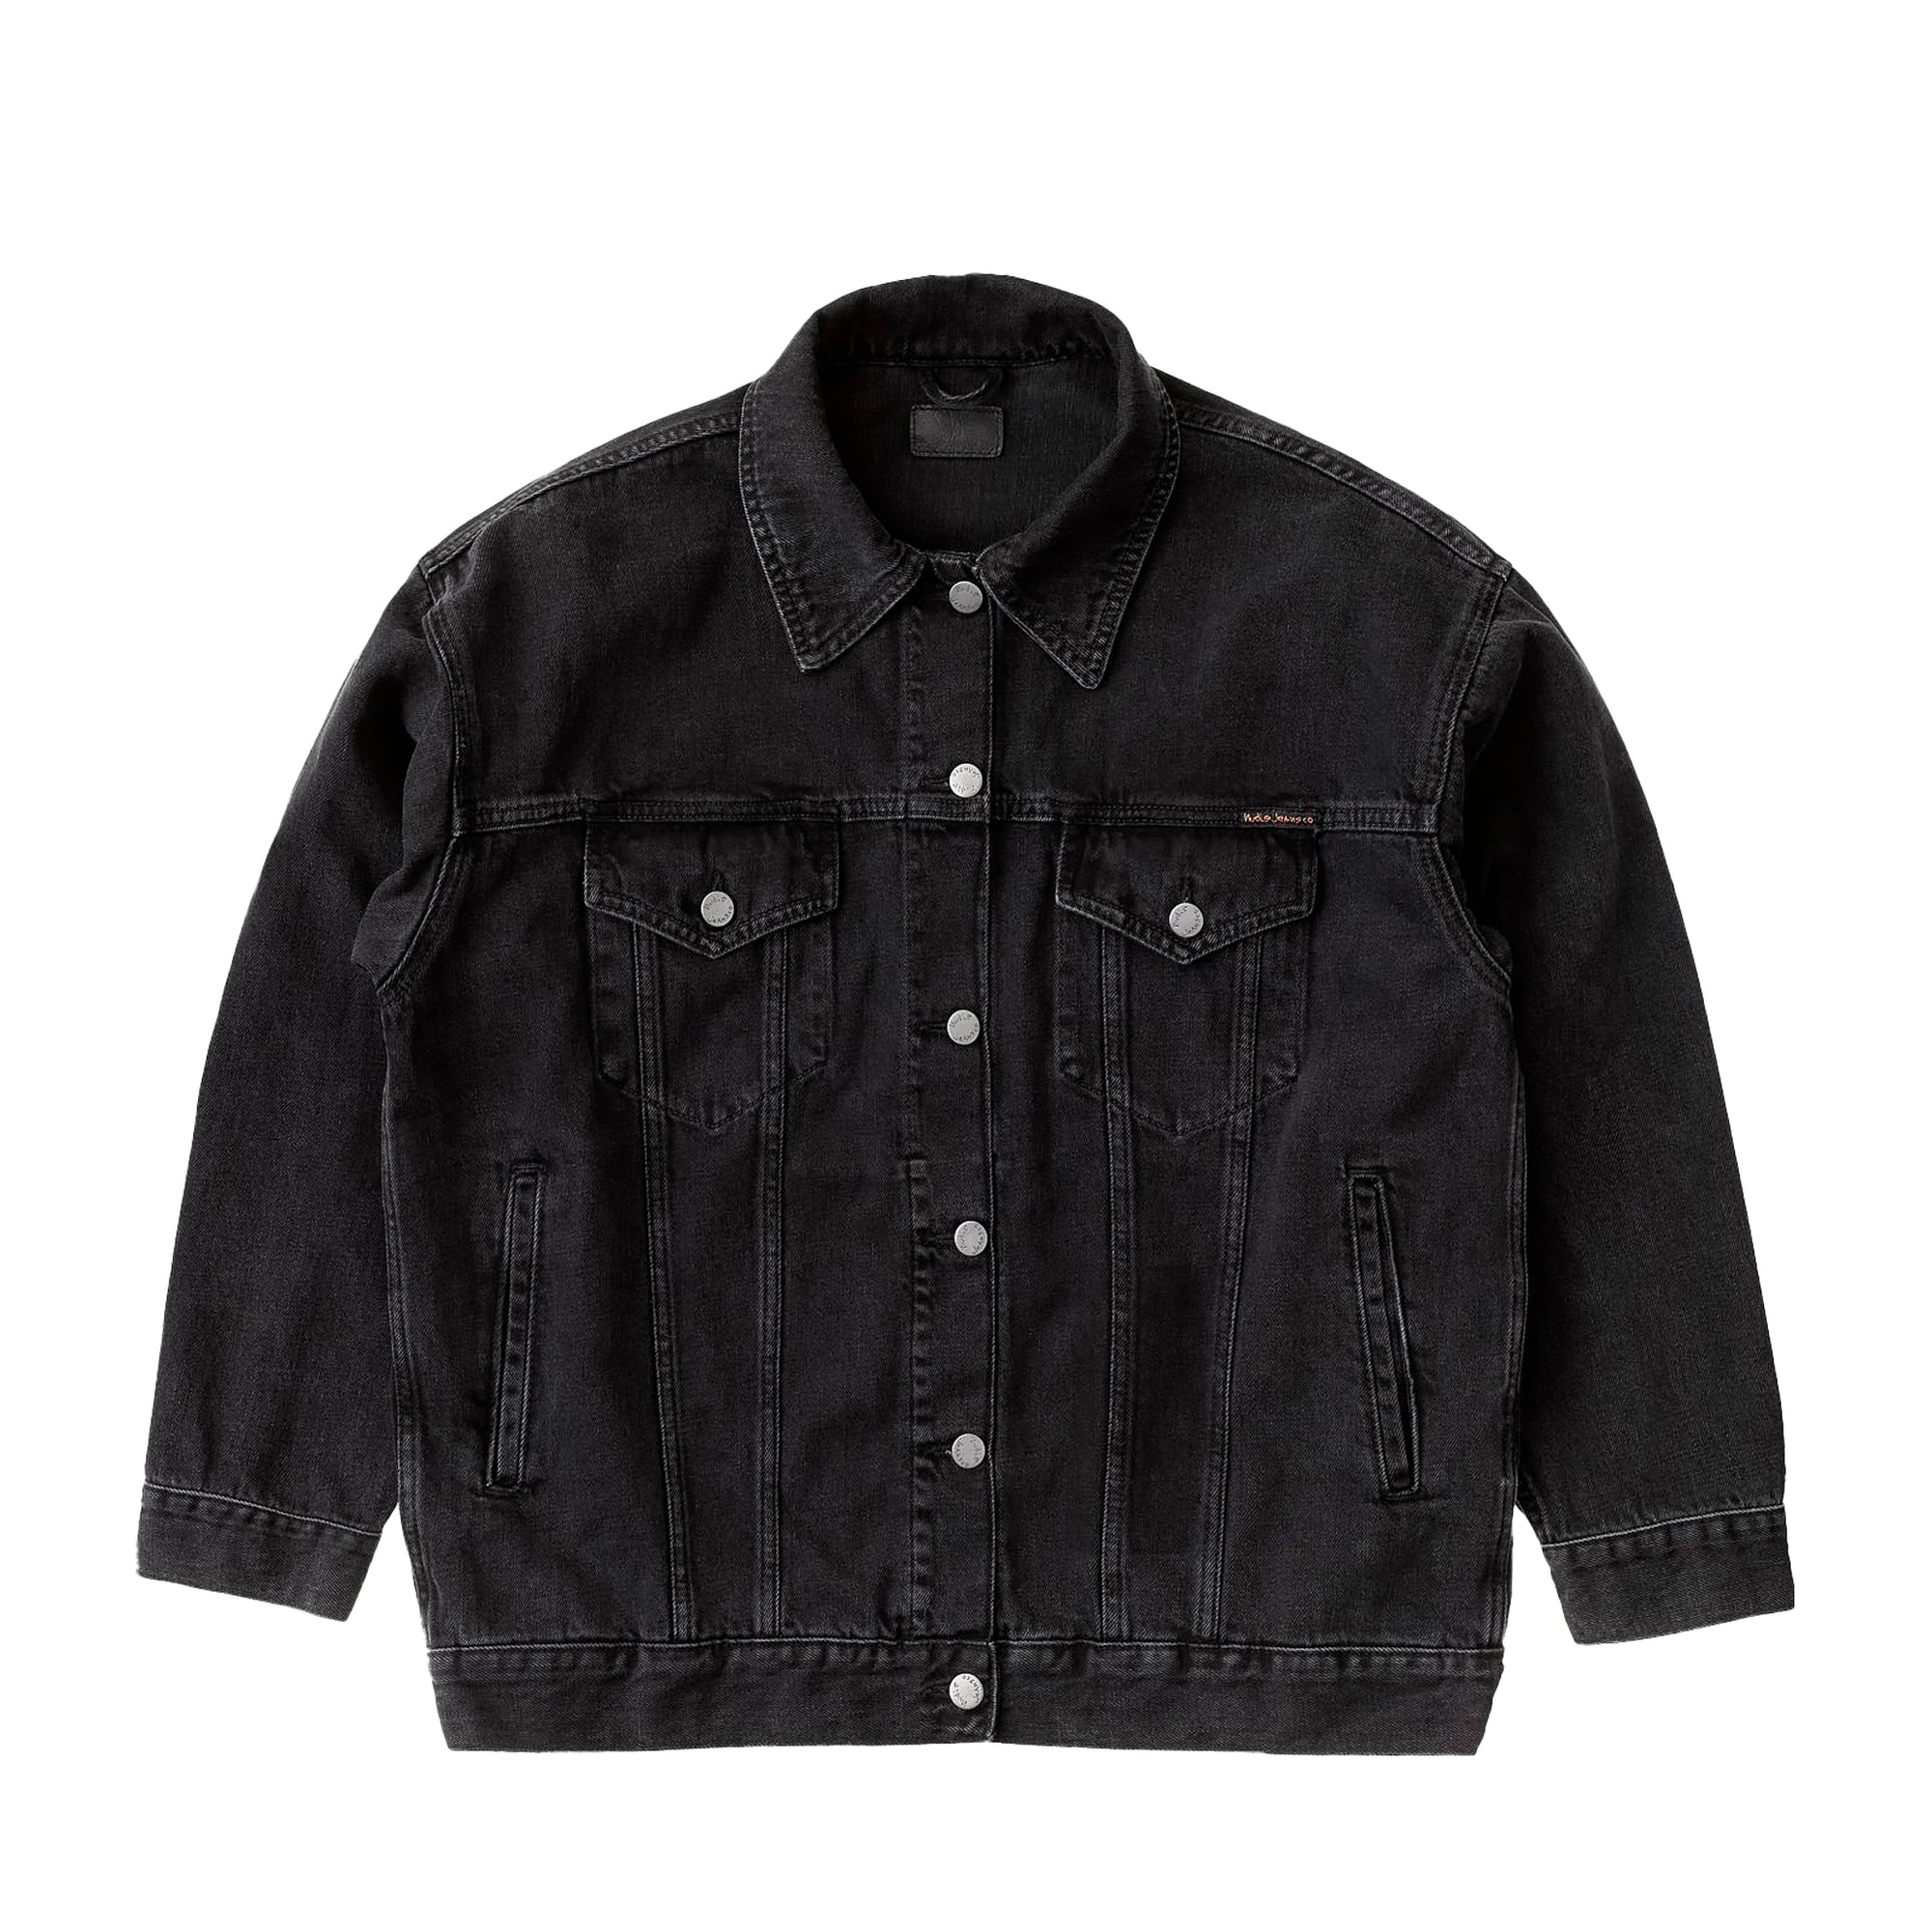 Nudie Jeans Womens Elin Jacket: Black Trace - The Union Project